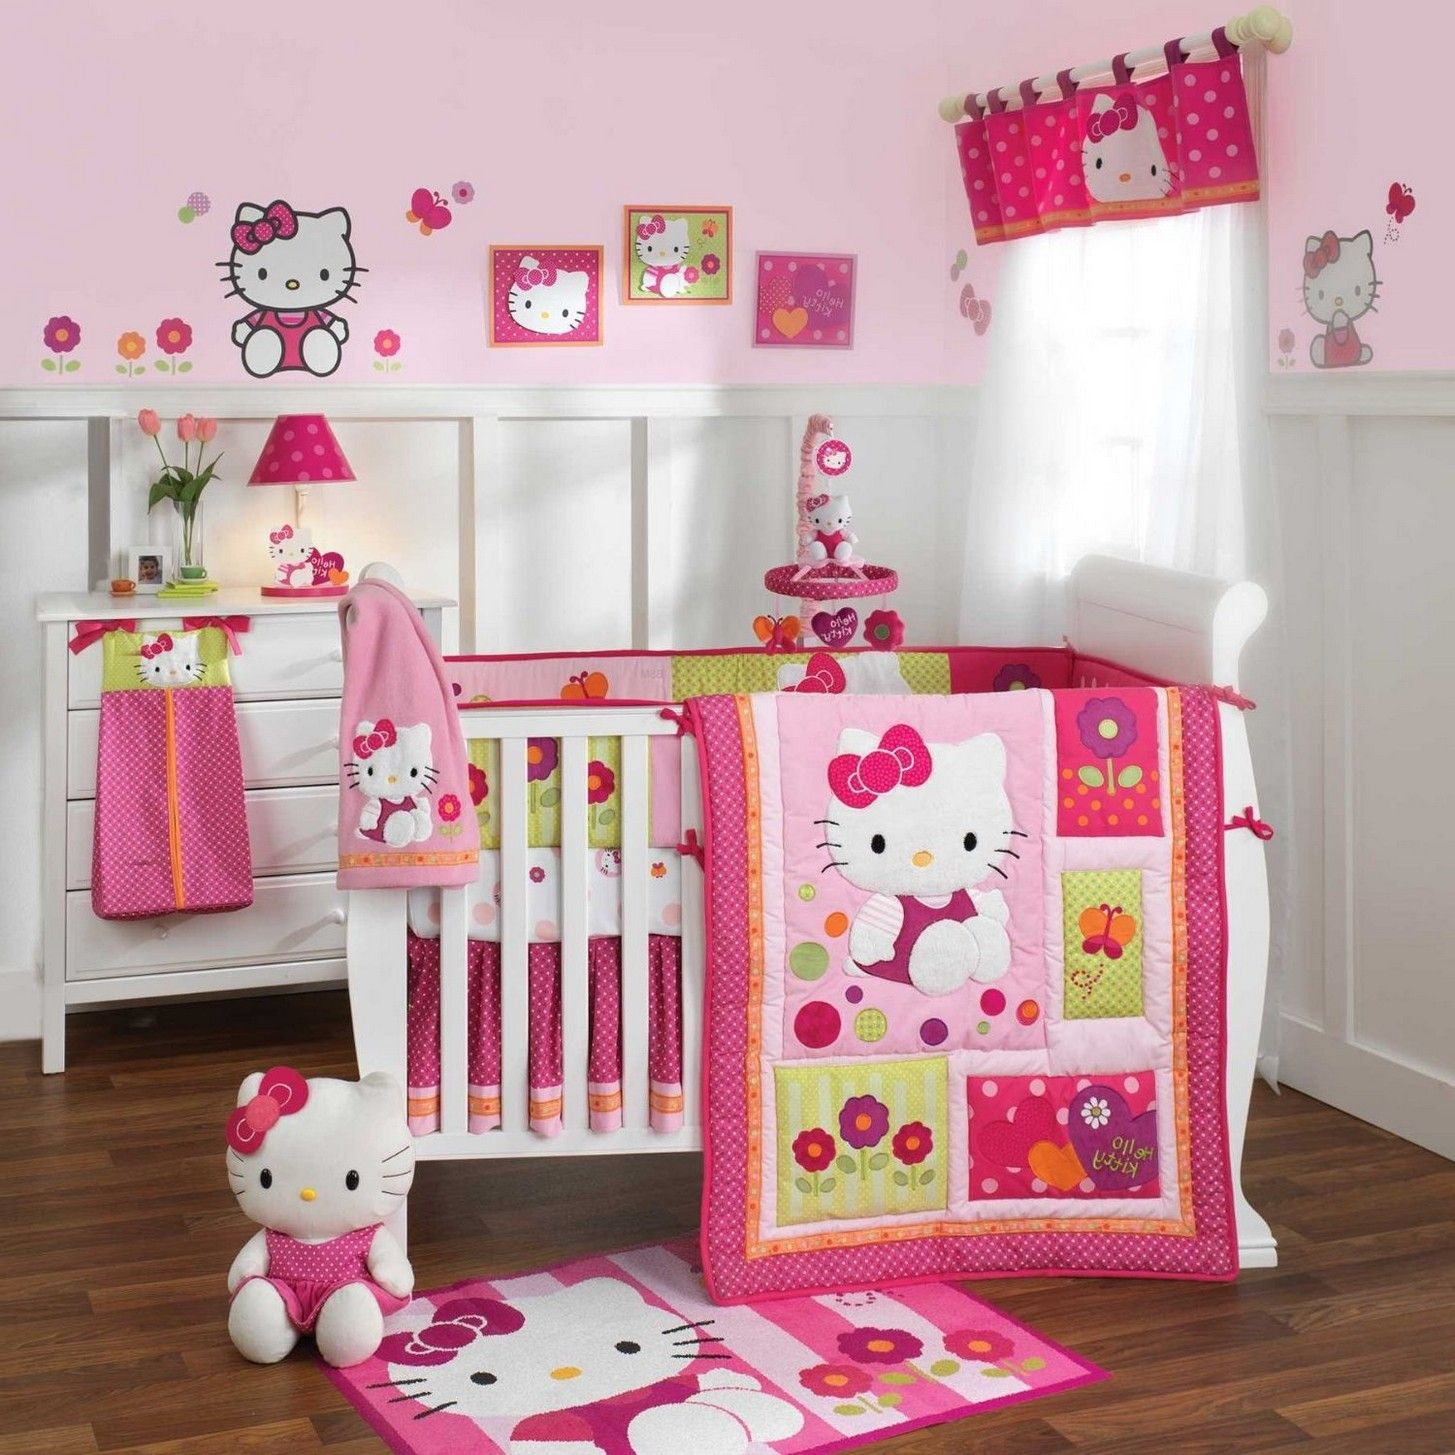 Hello Kitty Bedroom Is One Of The Most Popular Interior Theme For